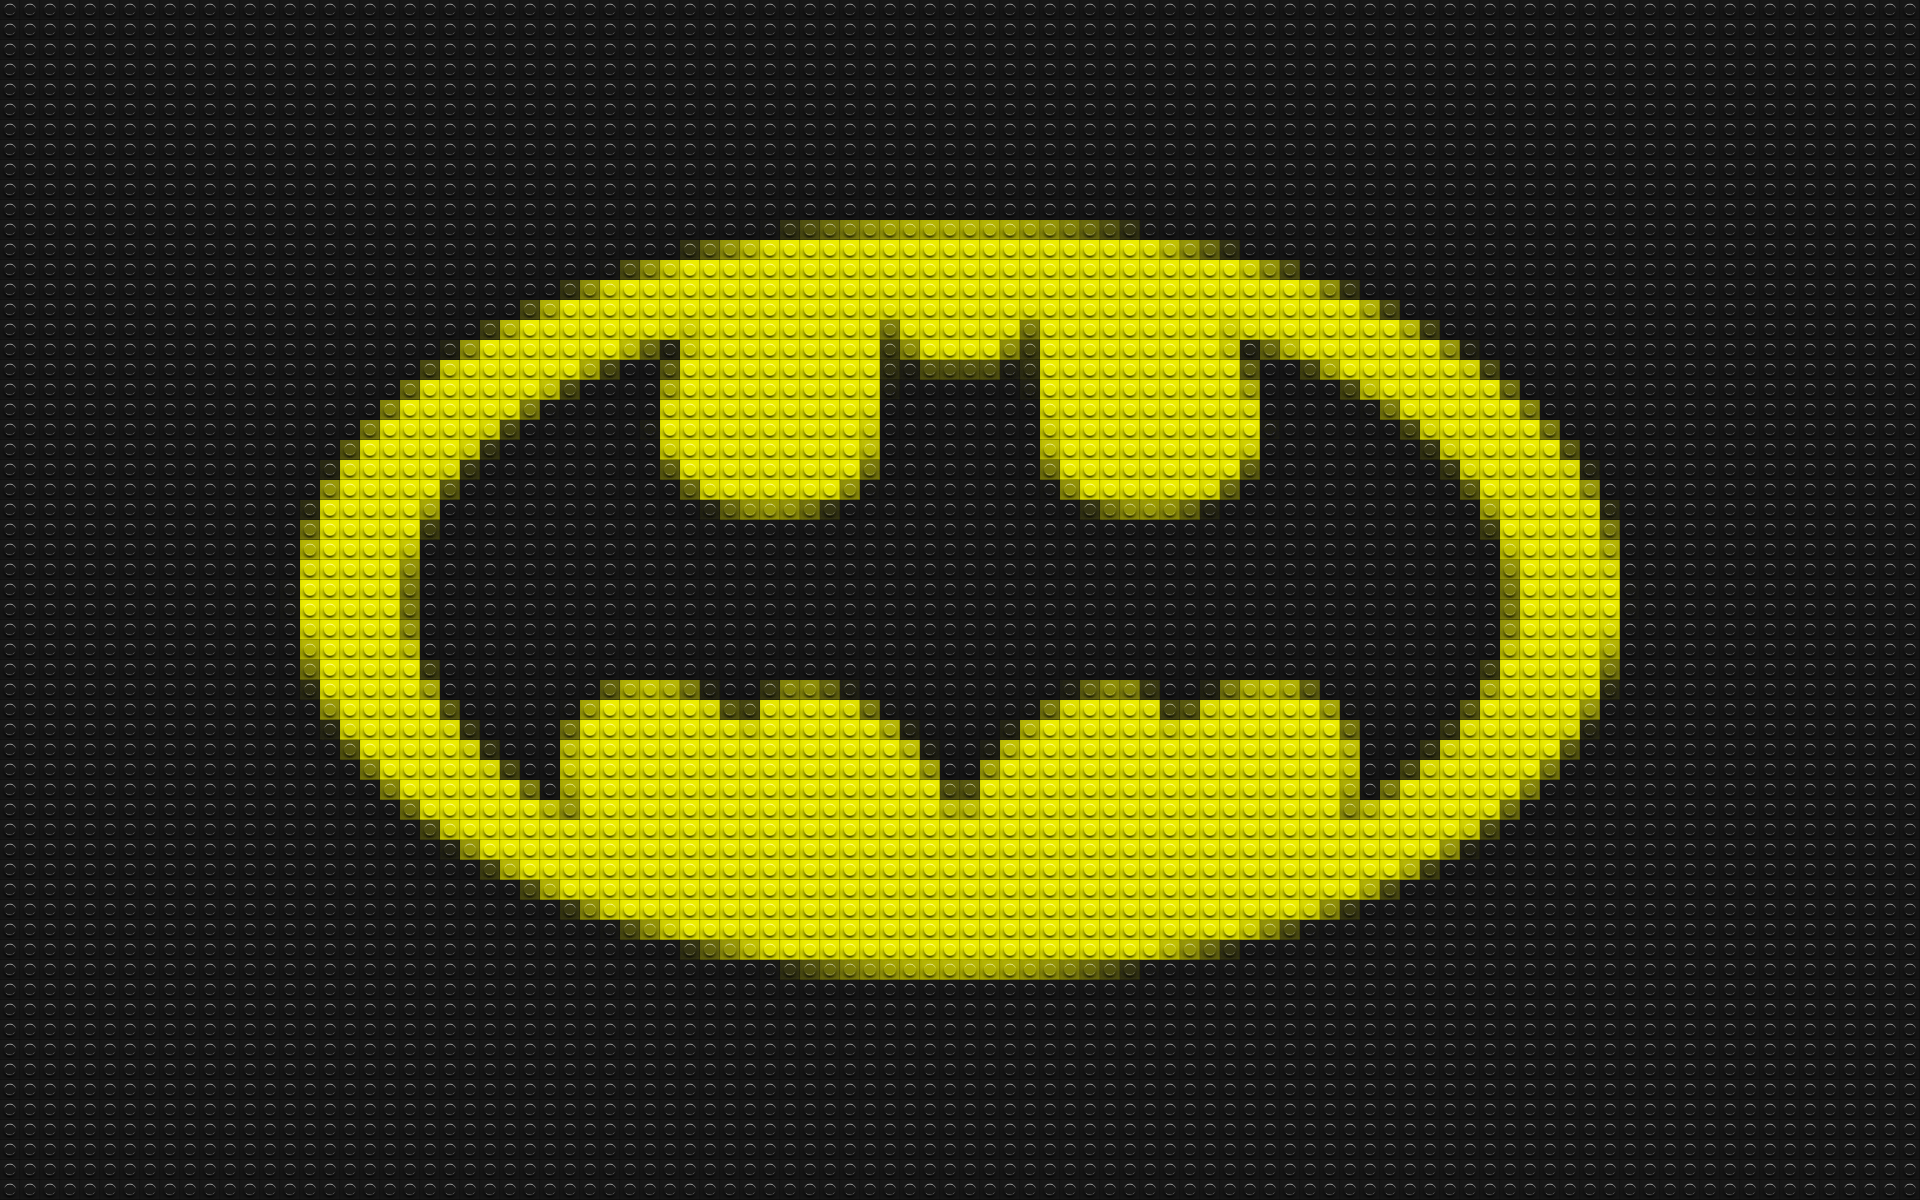 Lego Batman Wallpapers - Full HD wallpaper search